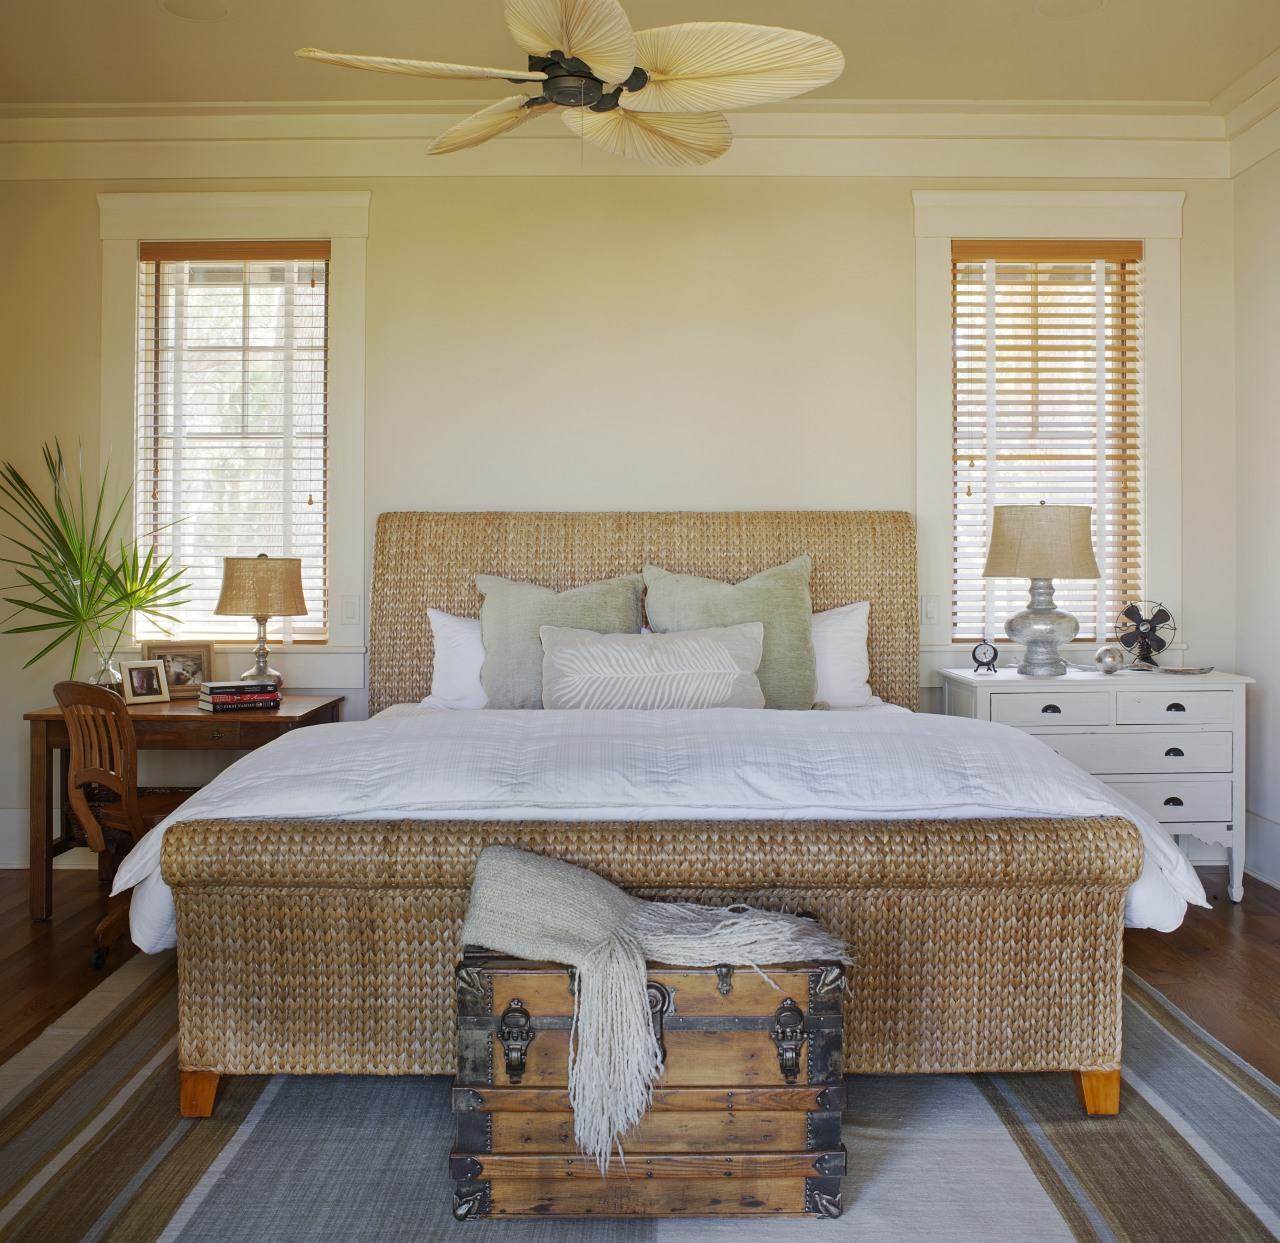 Traditional painted butt boards on the walls and bed, bed frame, bedding, bedroom, ceiling, estate, floor, furniture, home, interior design, living room, real estate, room, wall, window, wood, gray, brown